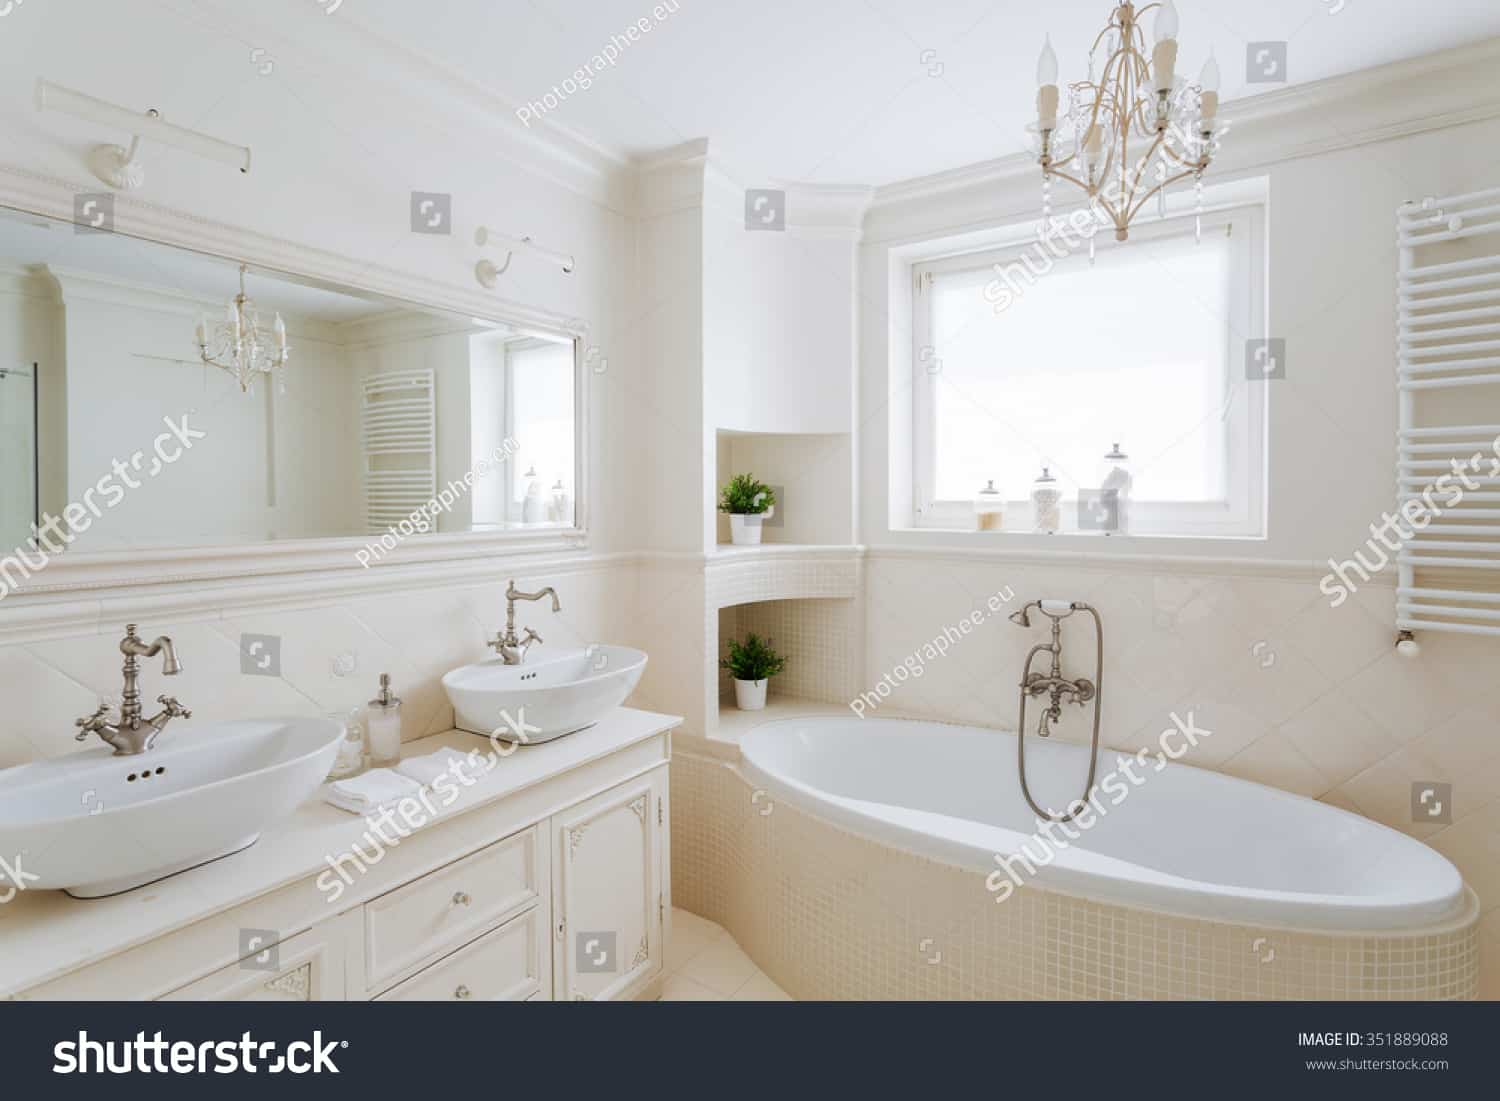 stock photo horizontal picture of a showy bathroom designed in creamy colors 351889088